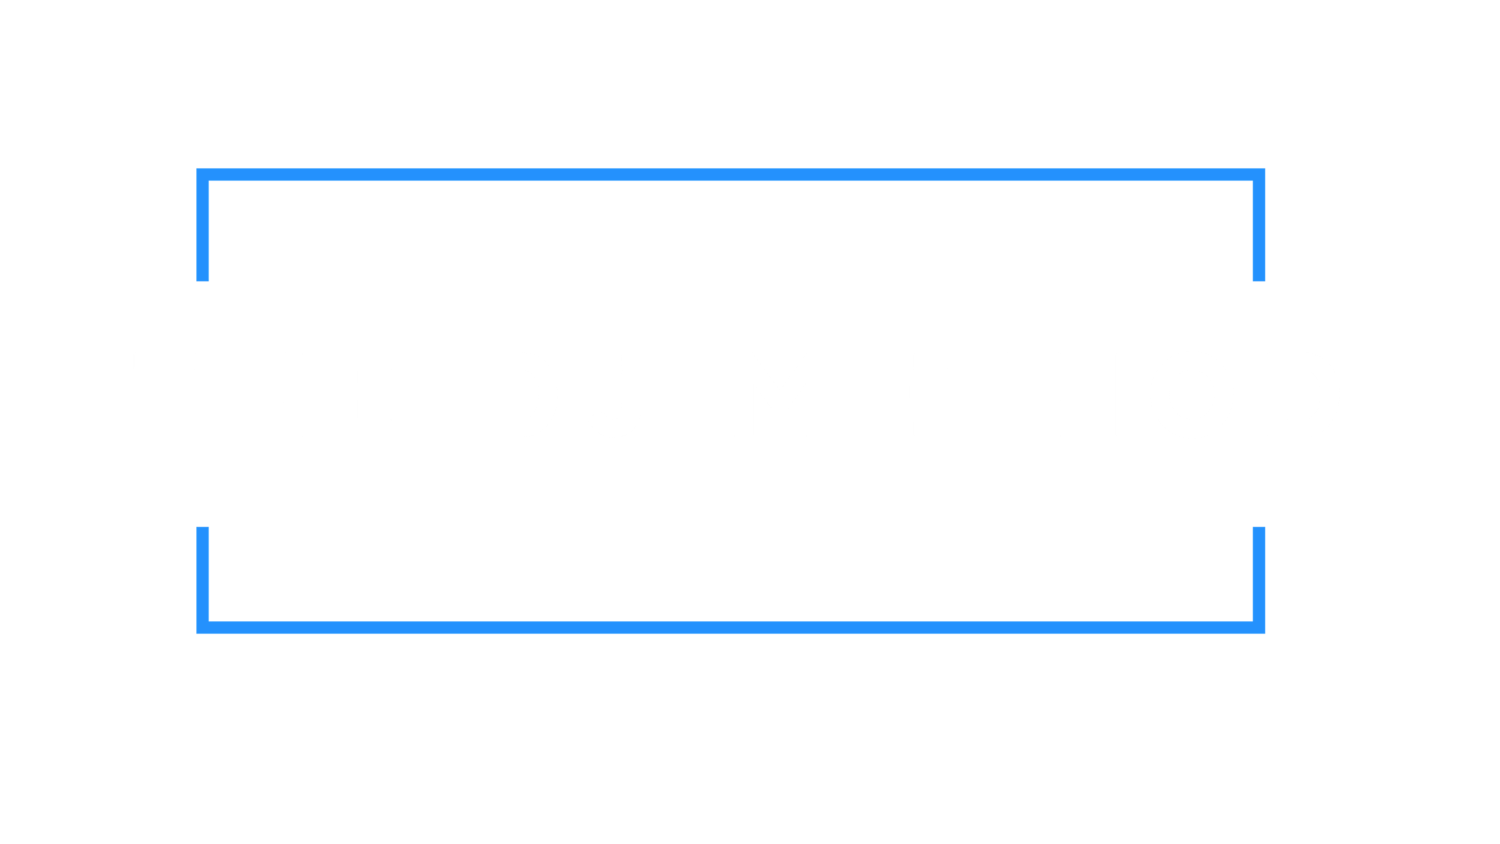 The DJ Method